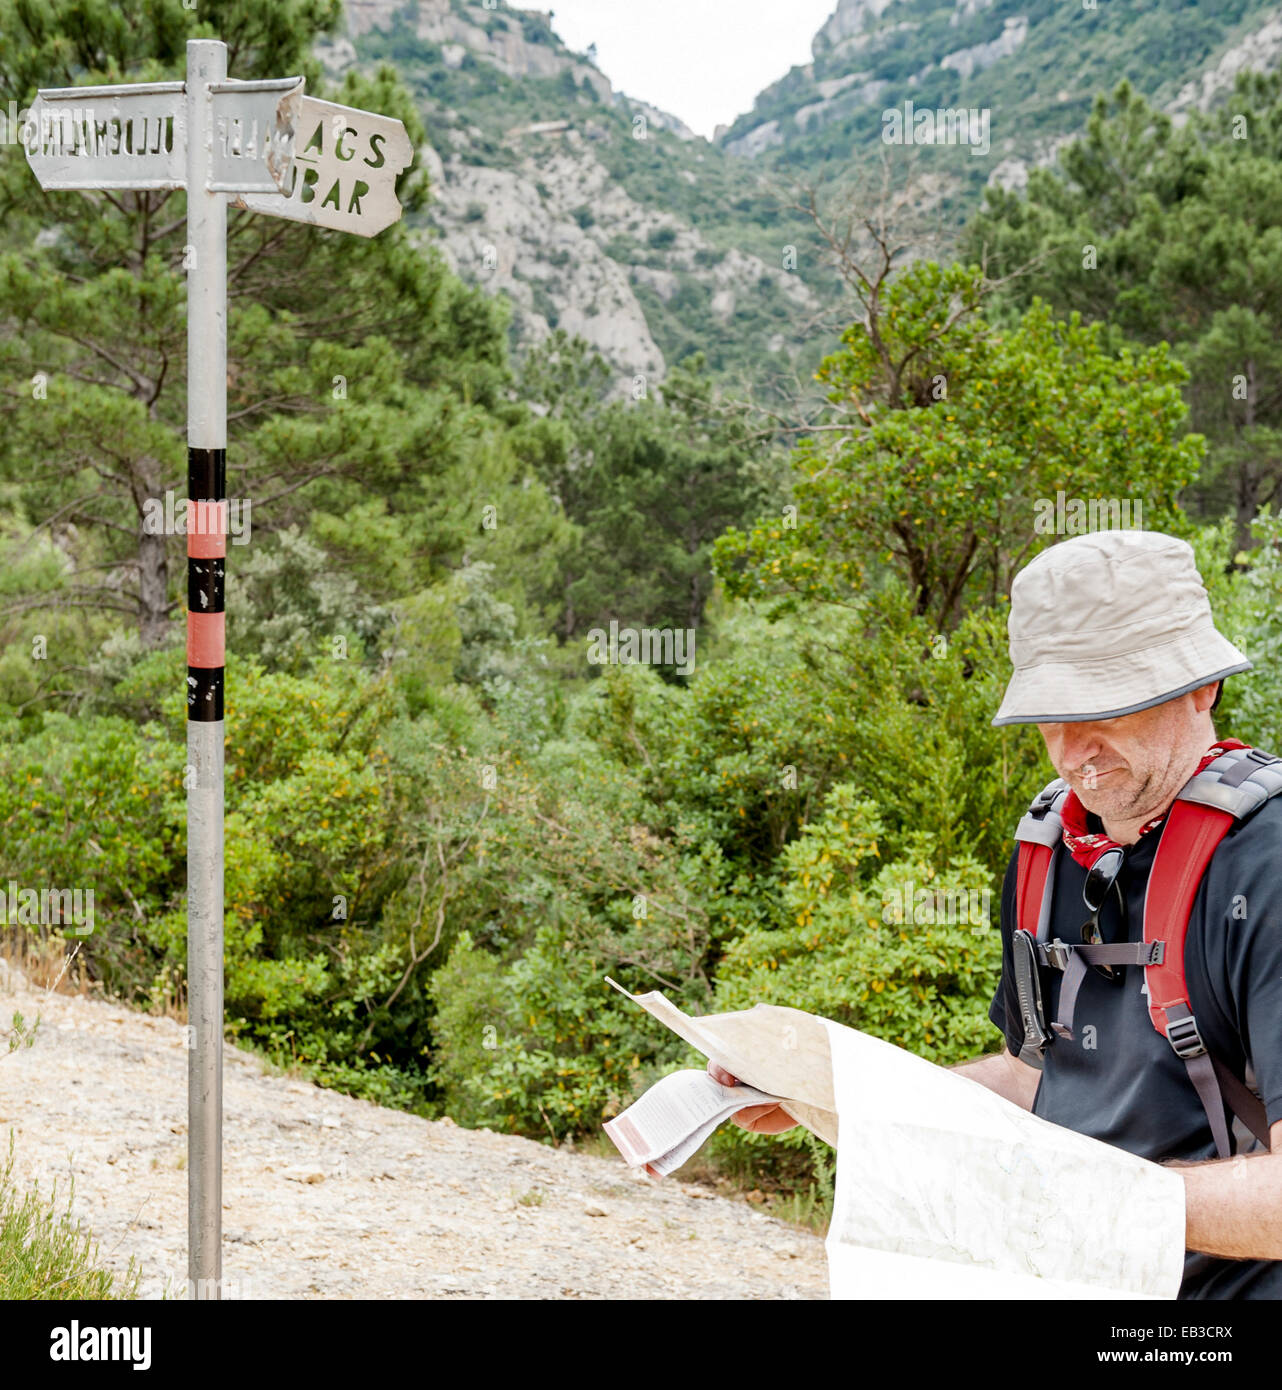 Spain, Catalonia, Tarragona, Priorat, Ulldemolins, Hiker on mountain trail looking at map near direction sign - Stock Image